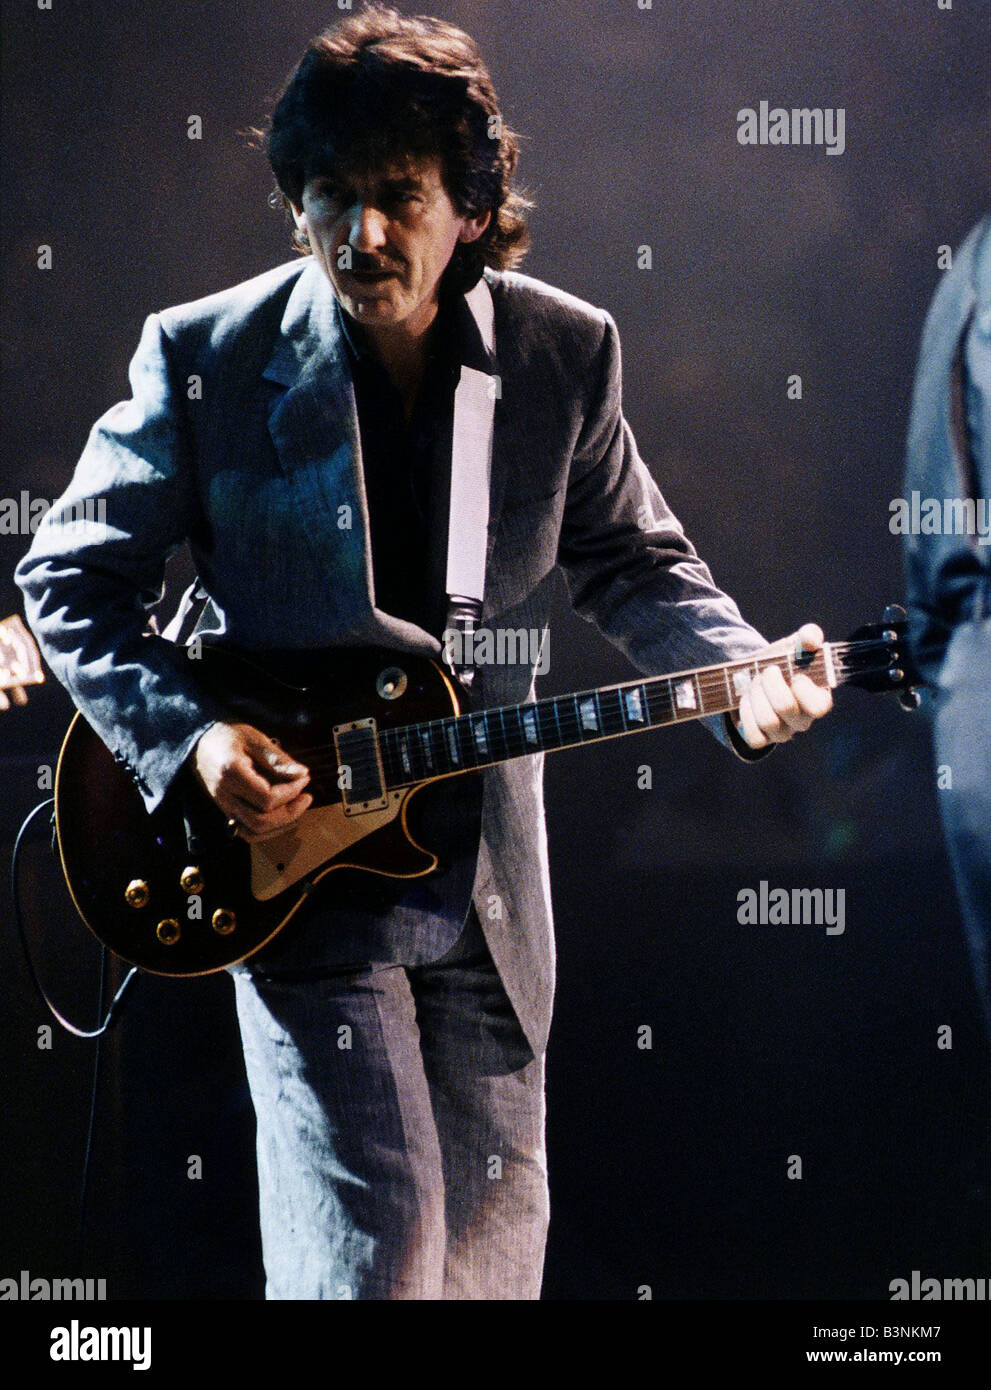 George Harrison On Stage Playing Guitar October 1992